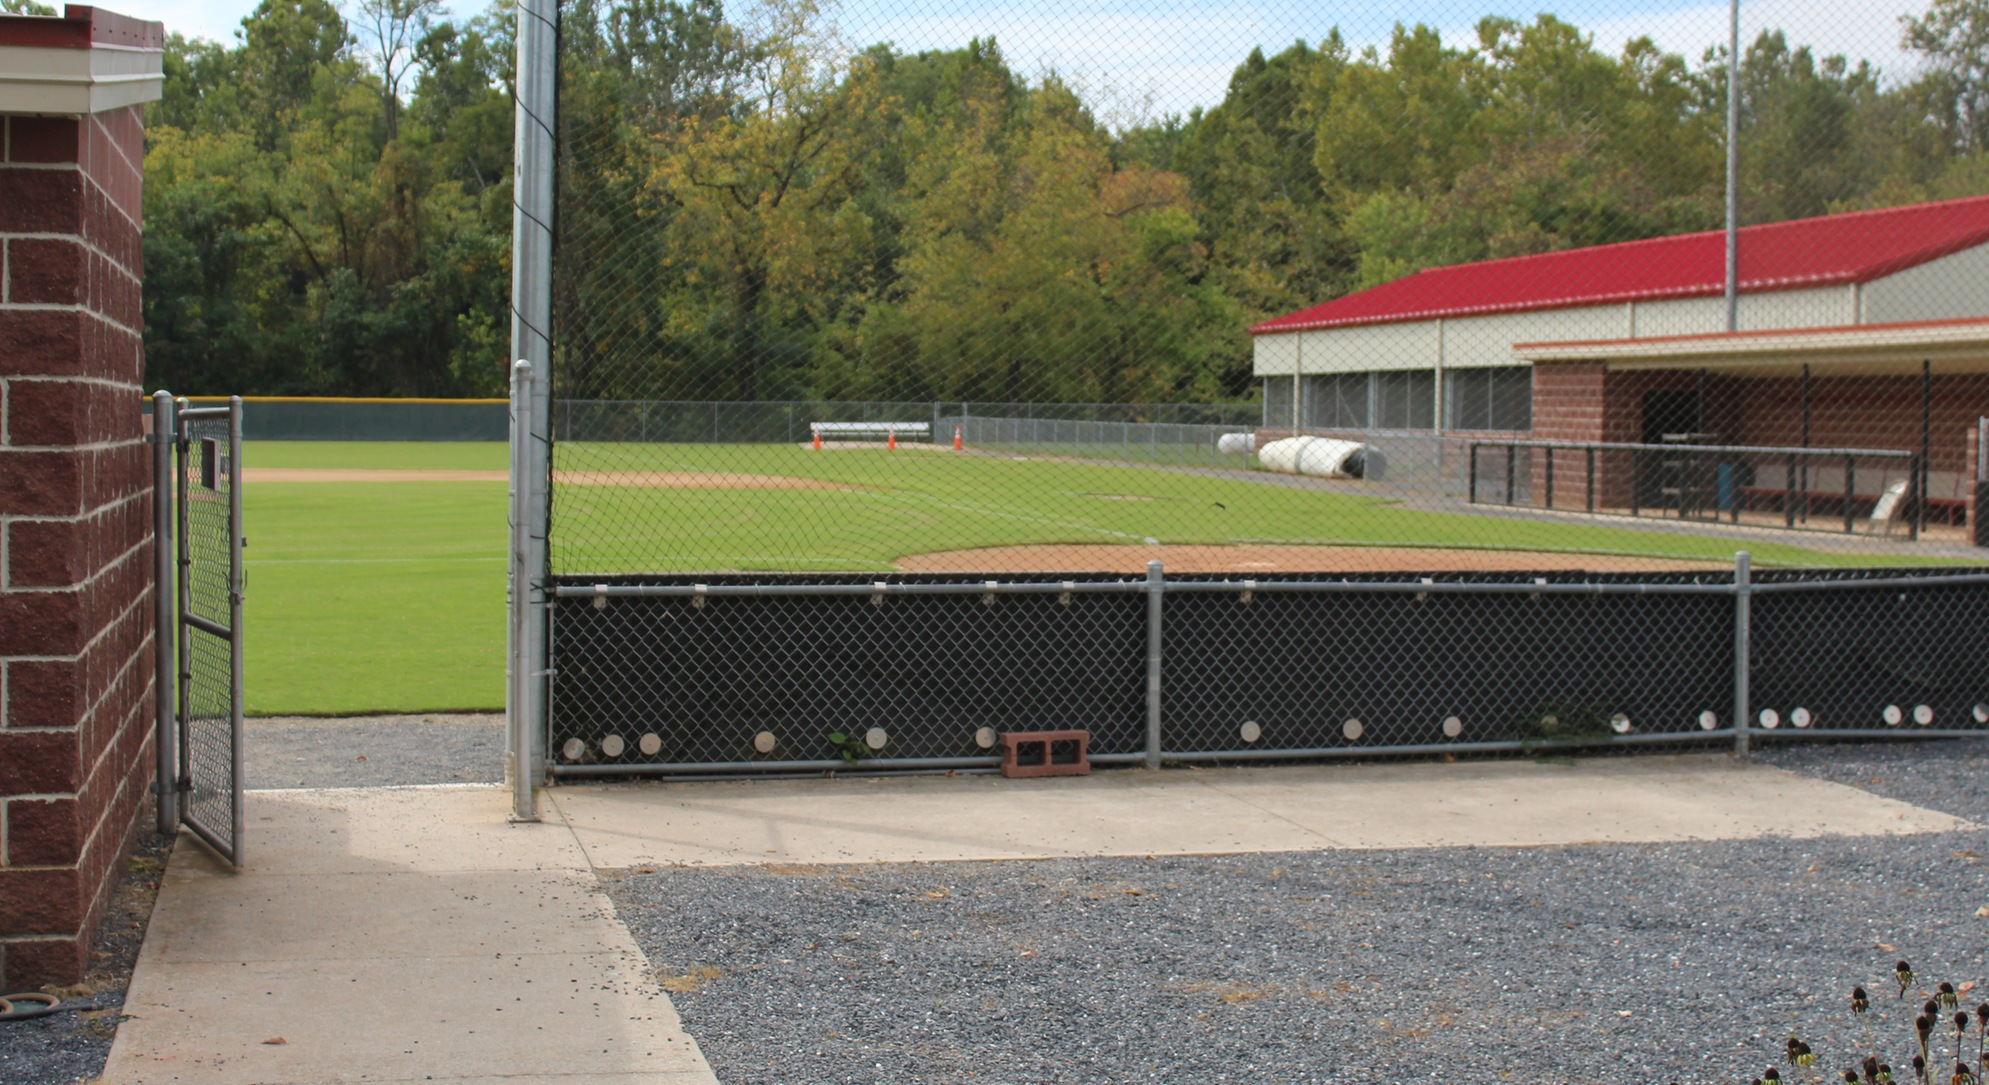 concrete seating area at baseball